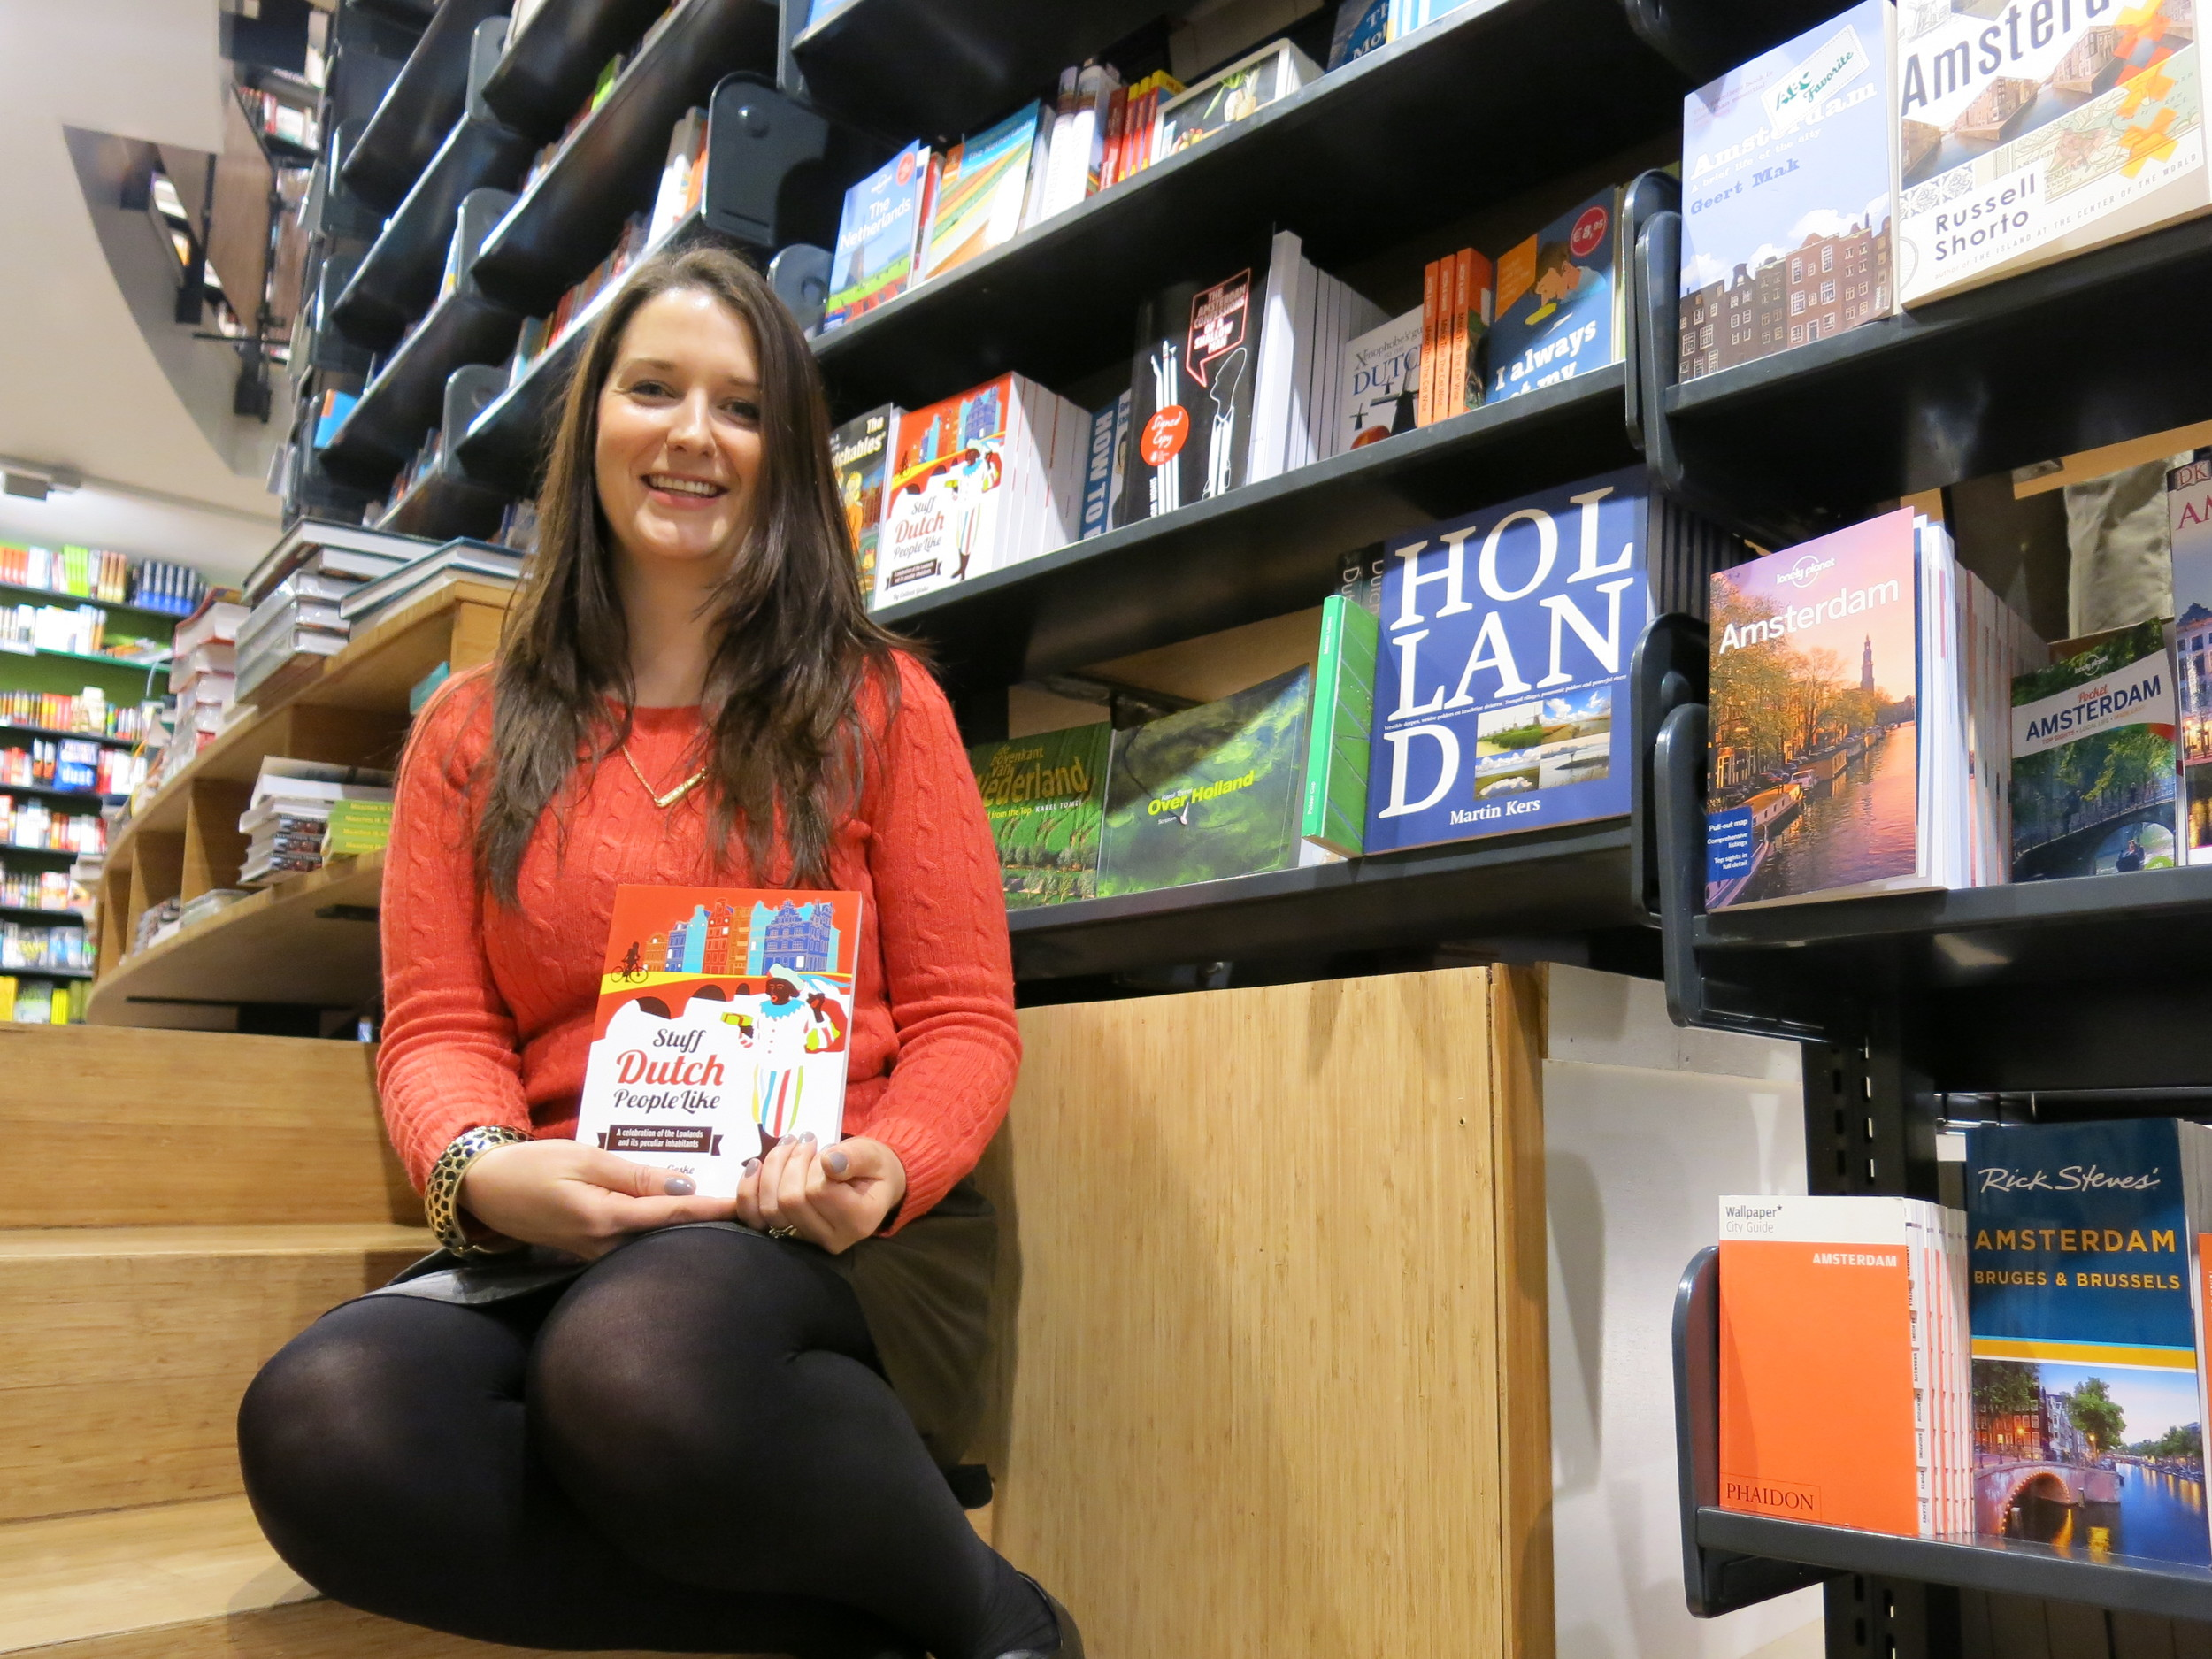 Colleen Geske, author of Stuff Dutch People Like, at the American Book Centre in Amsterdam. Geske, a Canadian who has lived in Holland for almost 10 years, self-published the book in November 2013, and has since struck a deal to have the book published in Dutch. Photo: Jessica Howard